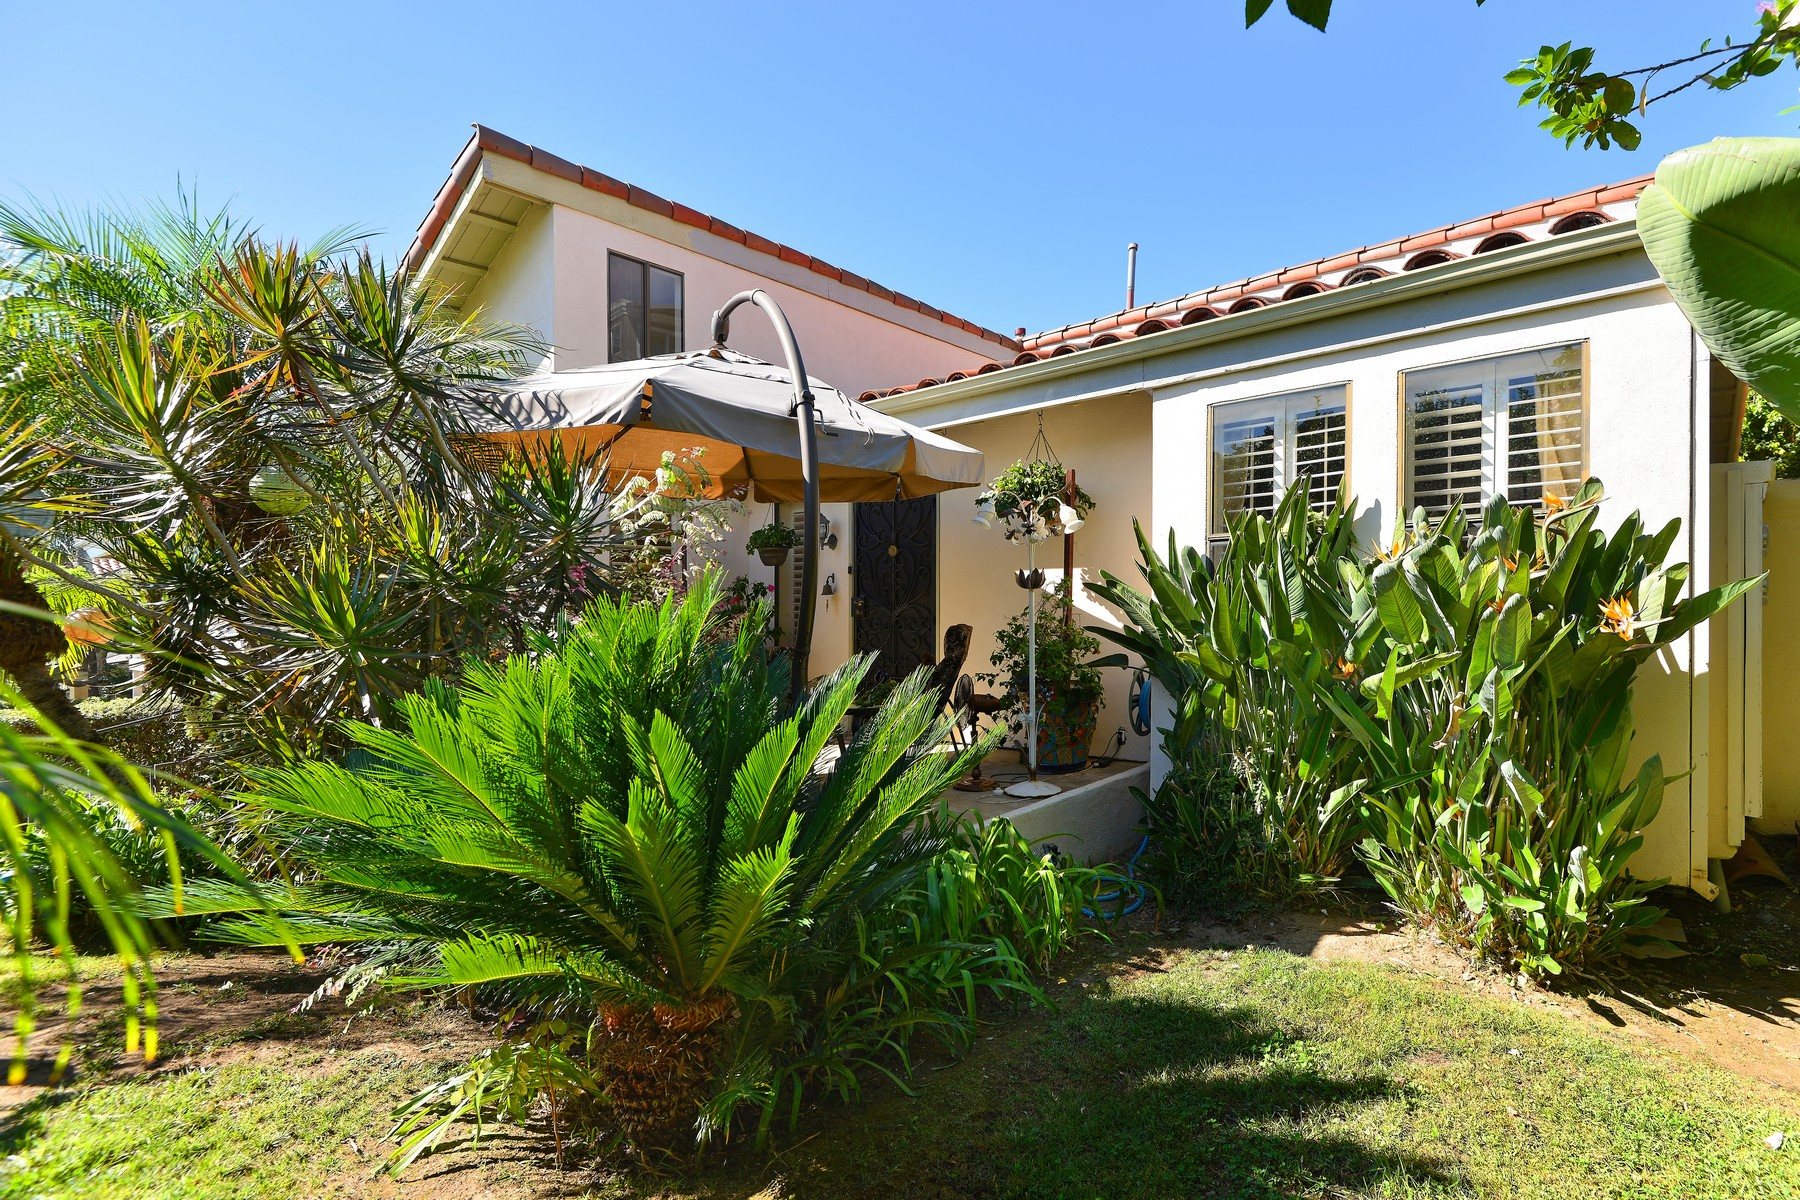 Additional photo for property listing at 634 Arenas Street  La Jolla, California 92037 United States